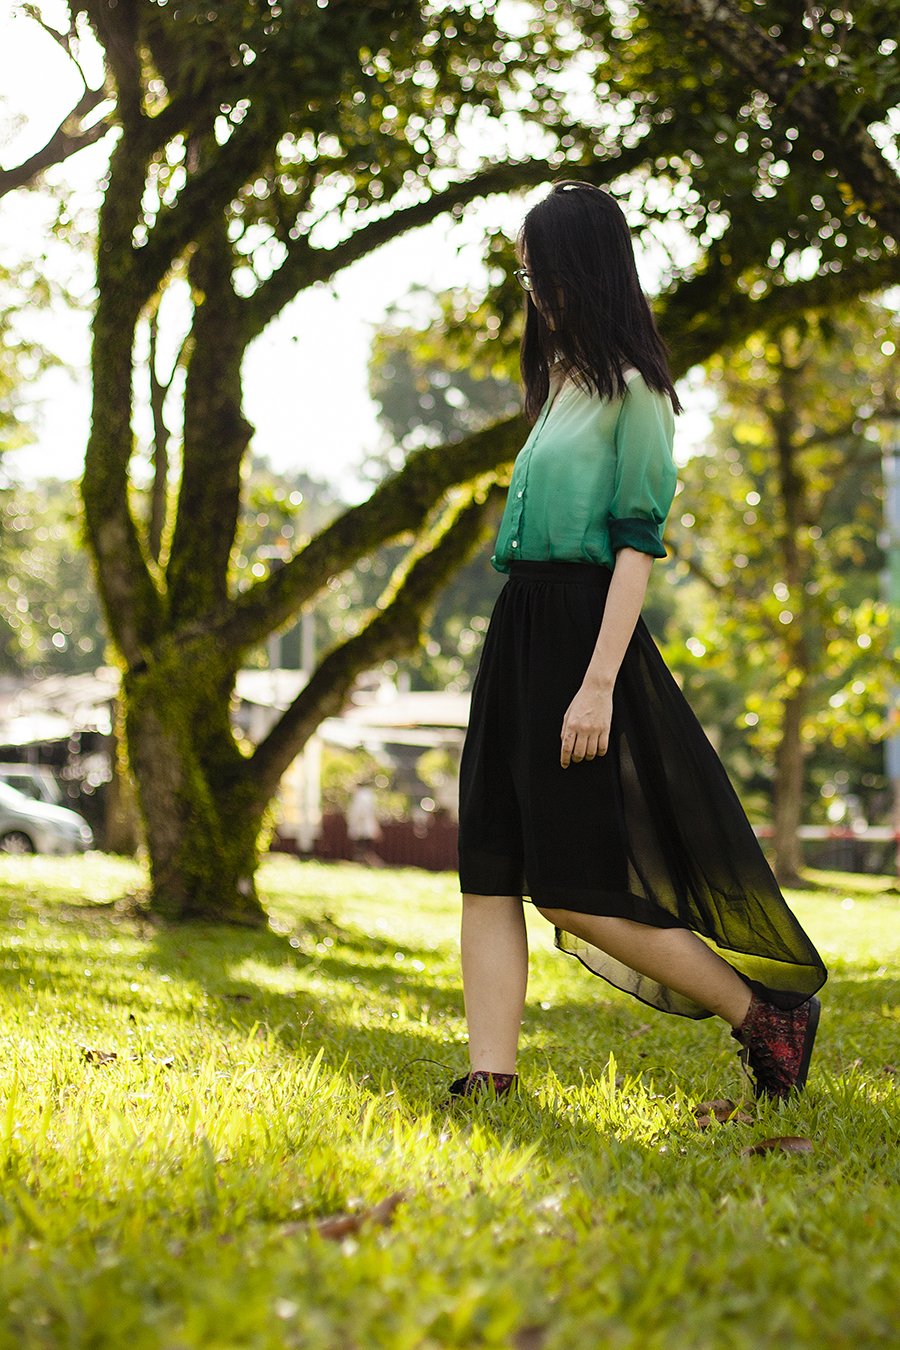 Gradient green chiffon shirt from Romwe, black chiffon skirt from Forever 21, black frame glasses from Gap, red high top sneakers from Puma x McQ via Shopbop, red matryoshka earrings.